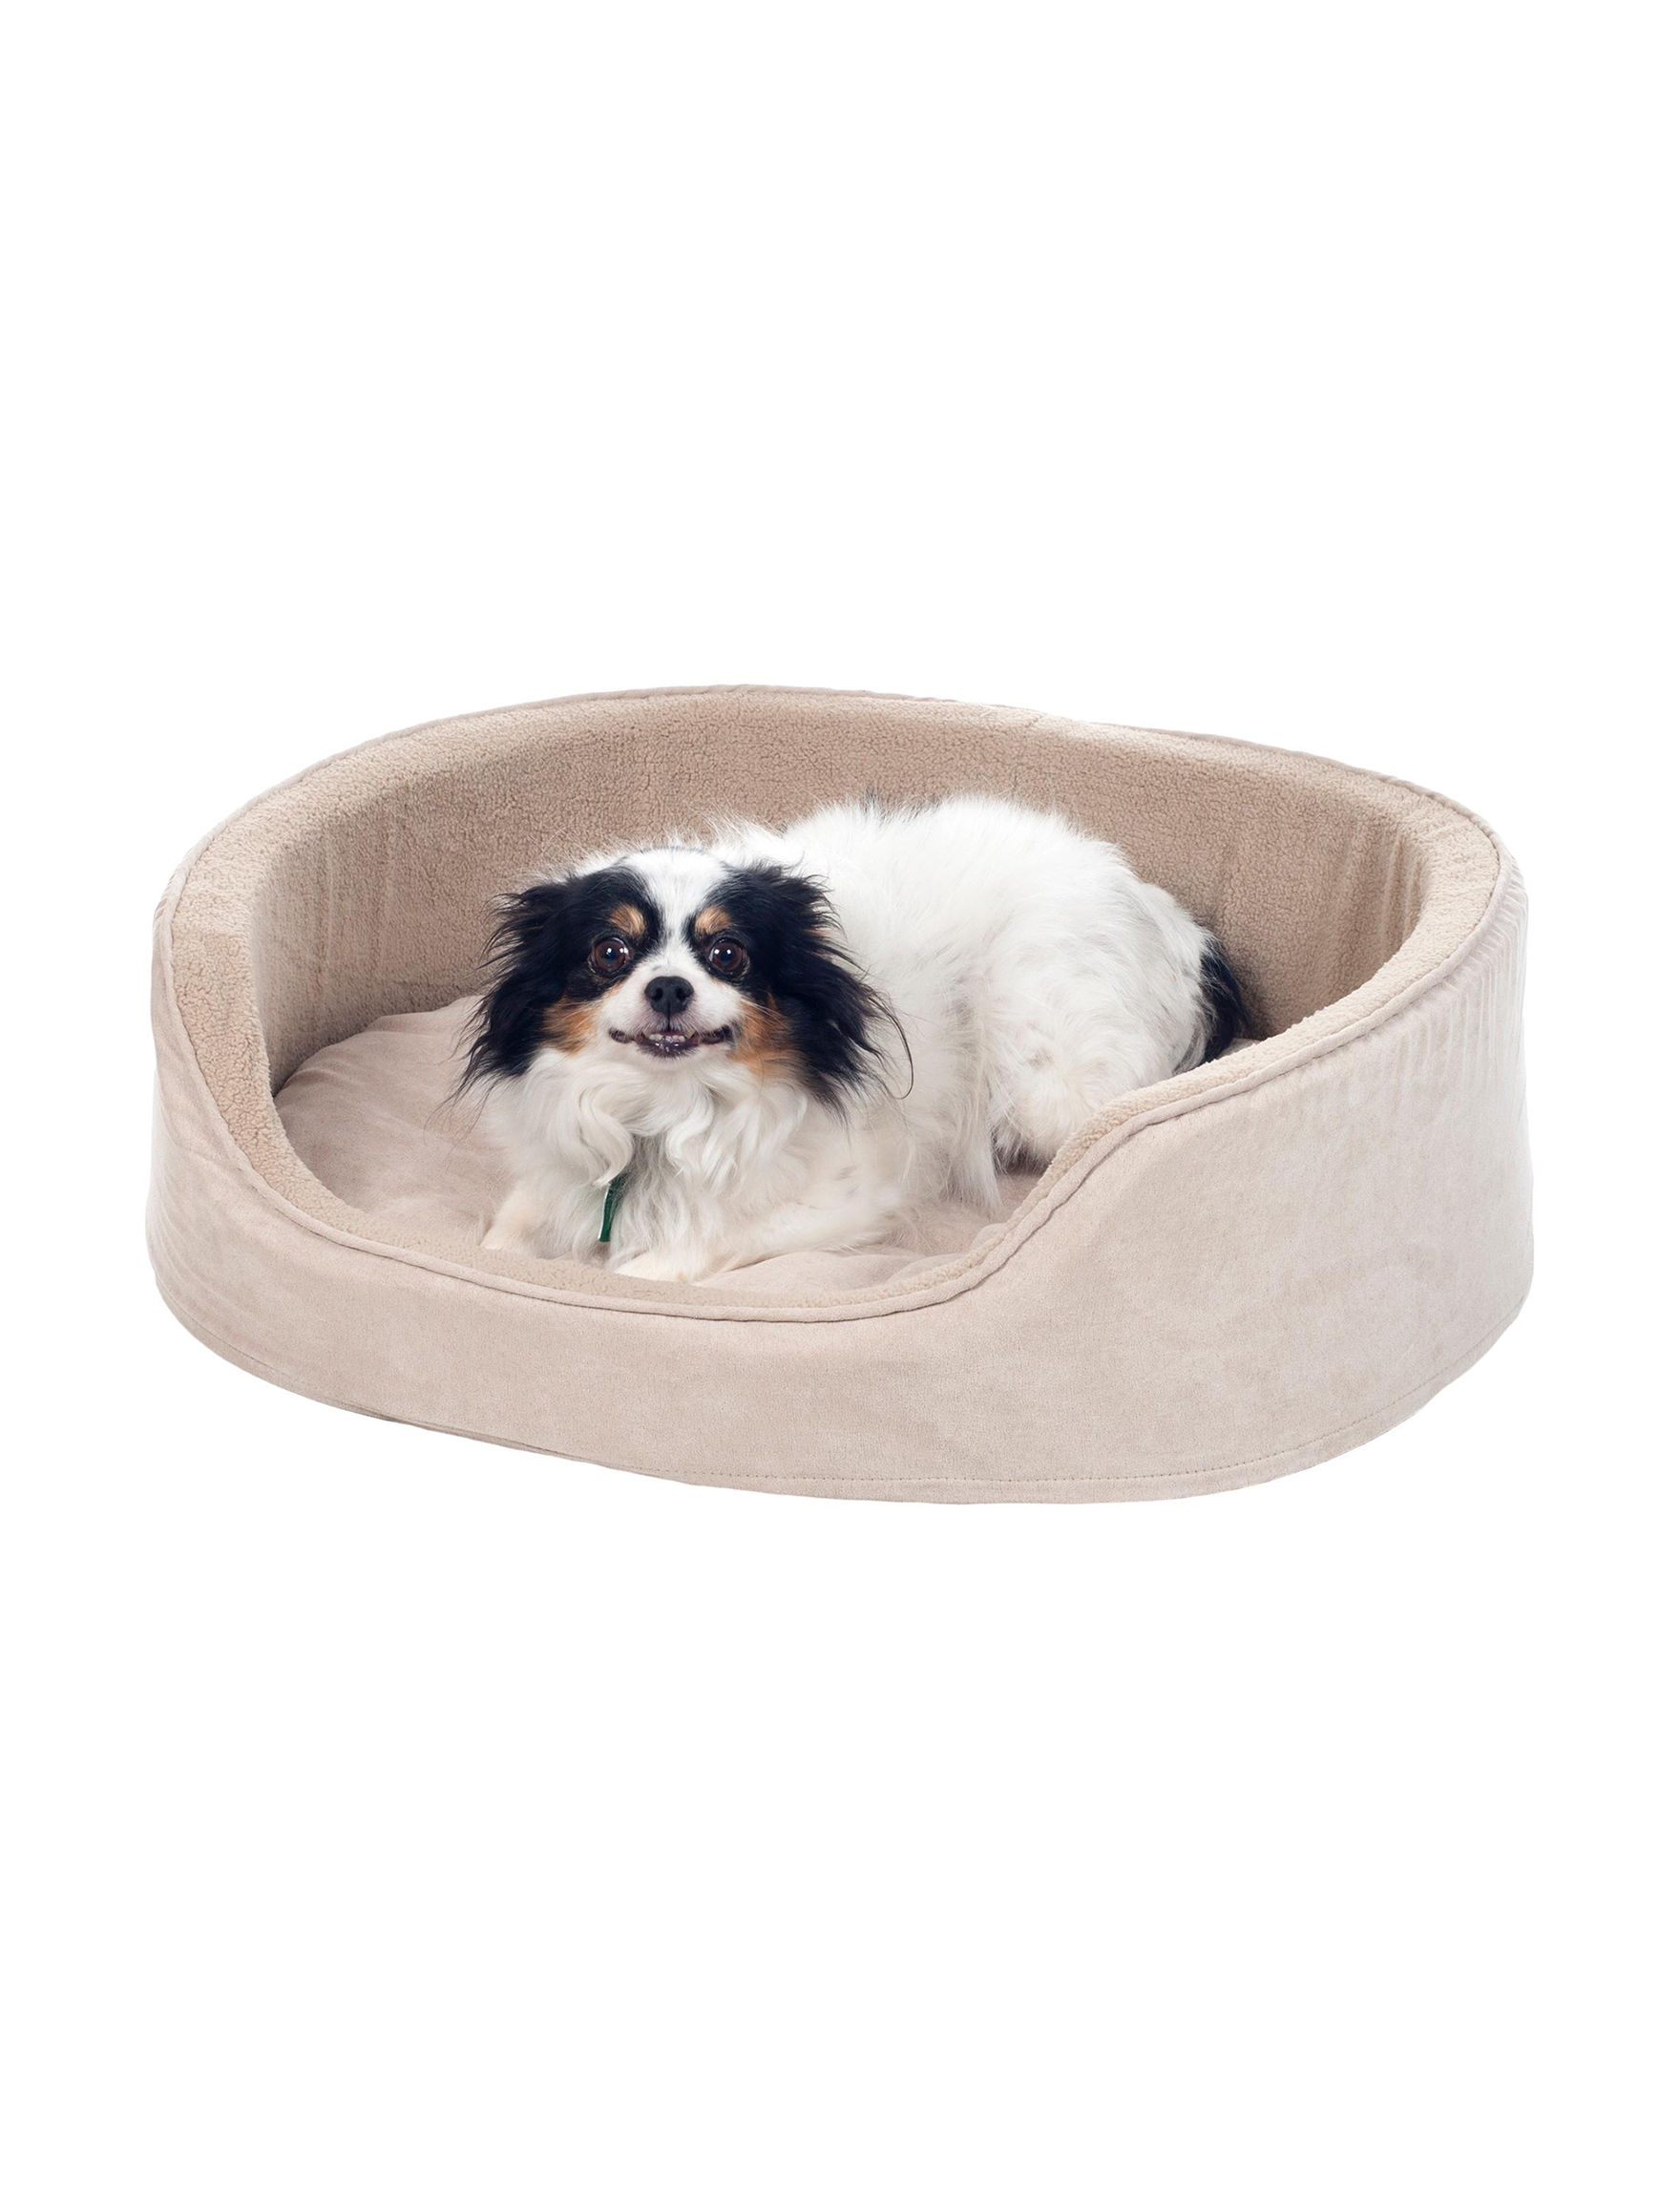 Paw Beige Pet Beds & Houses